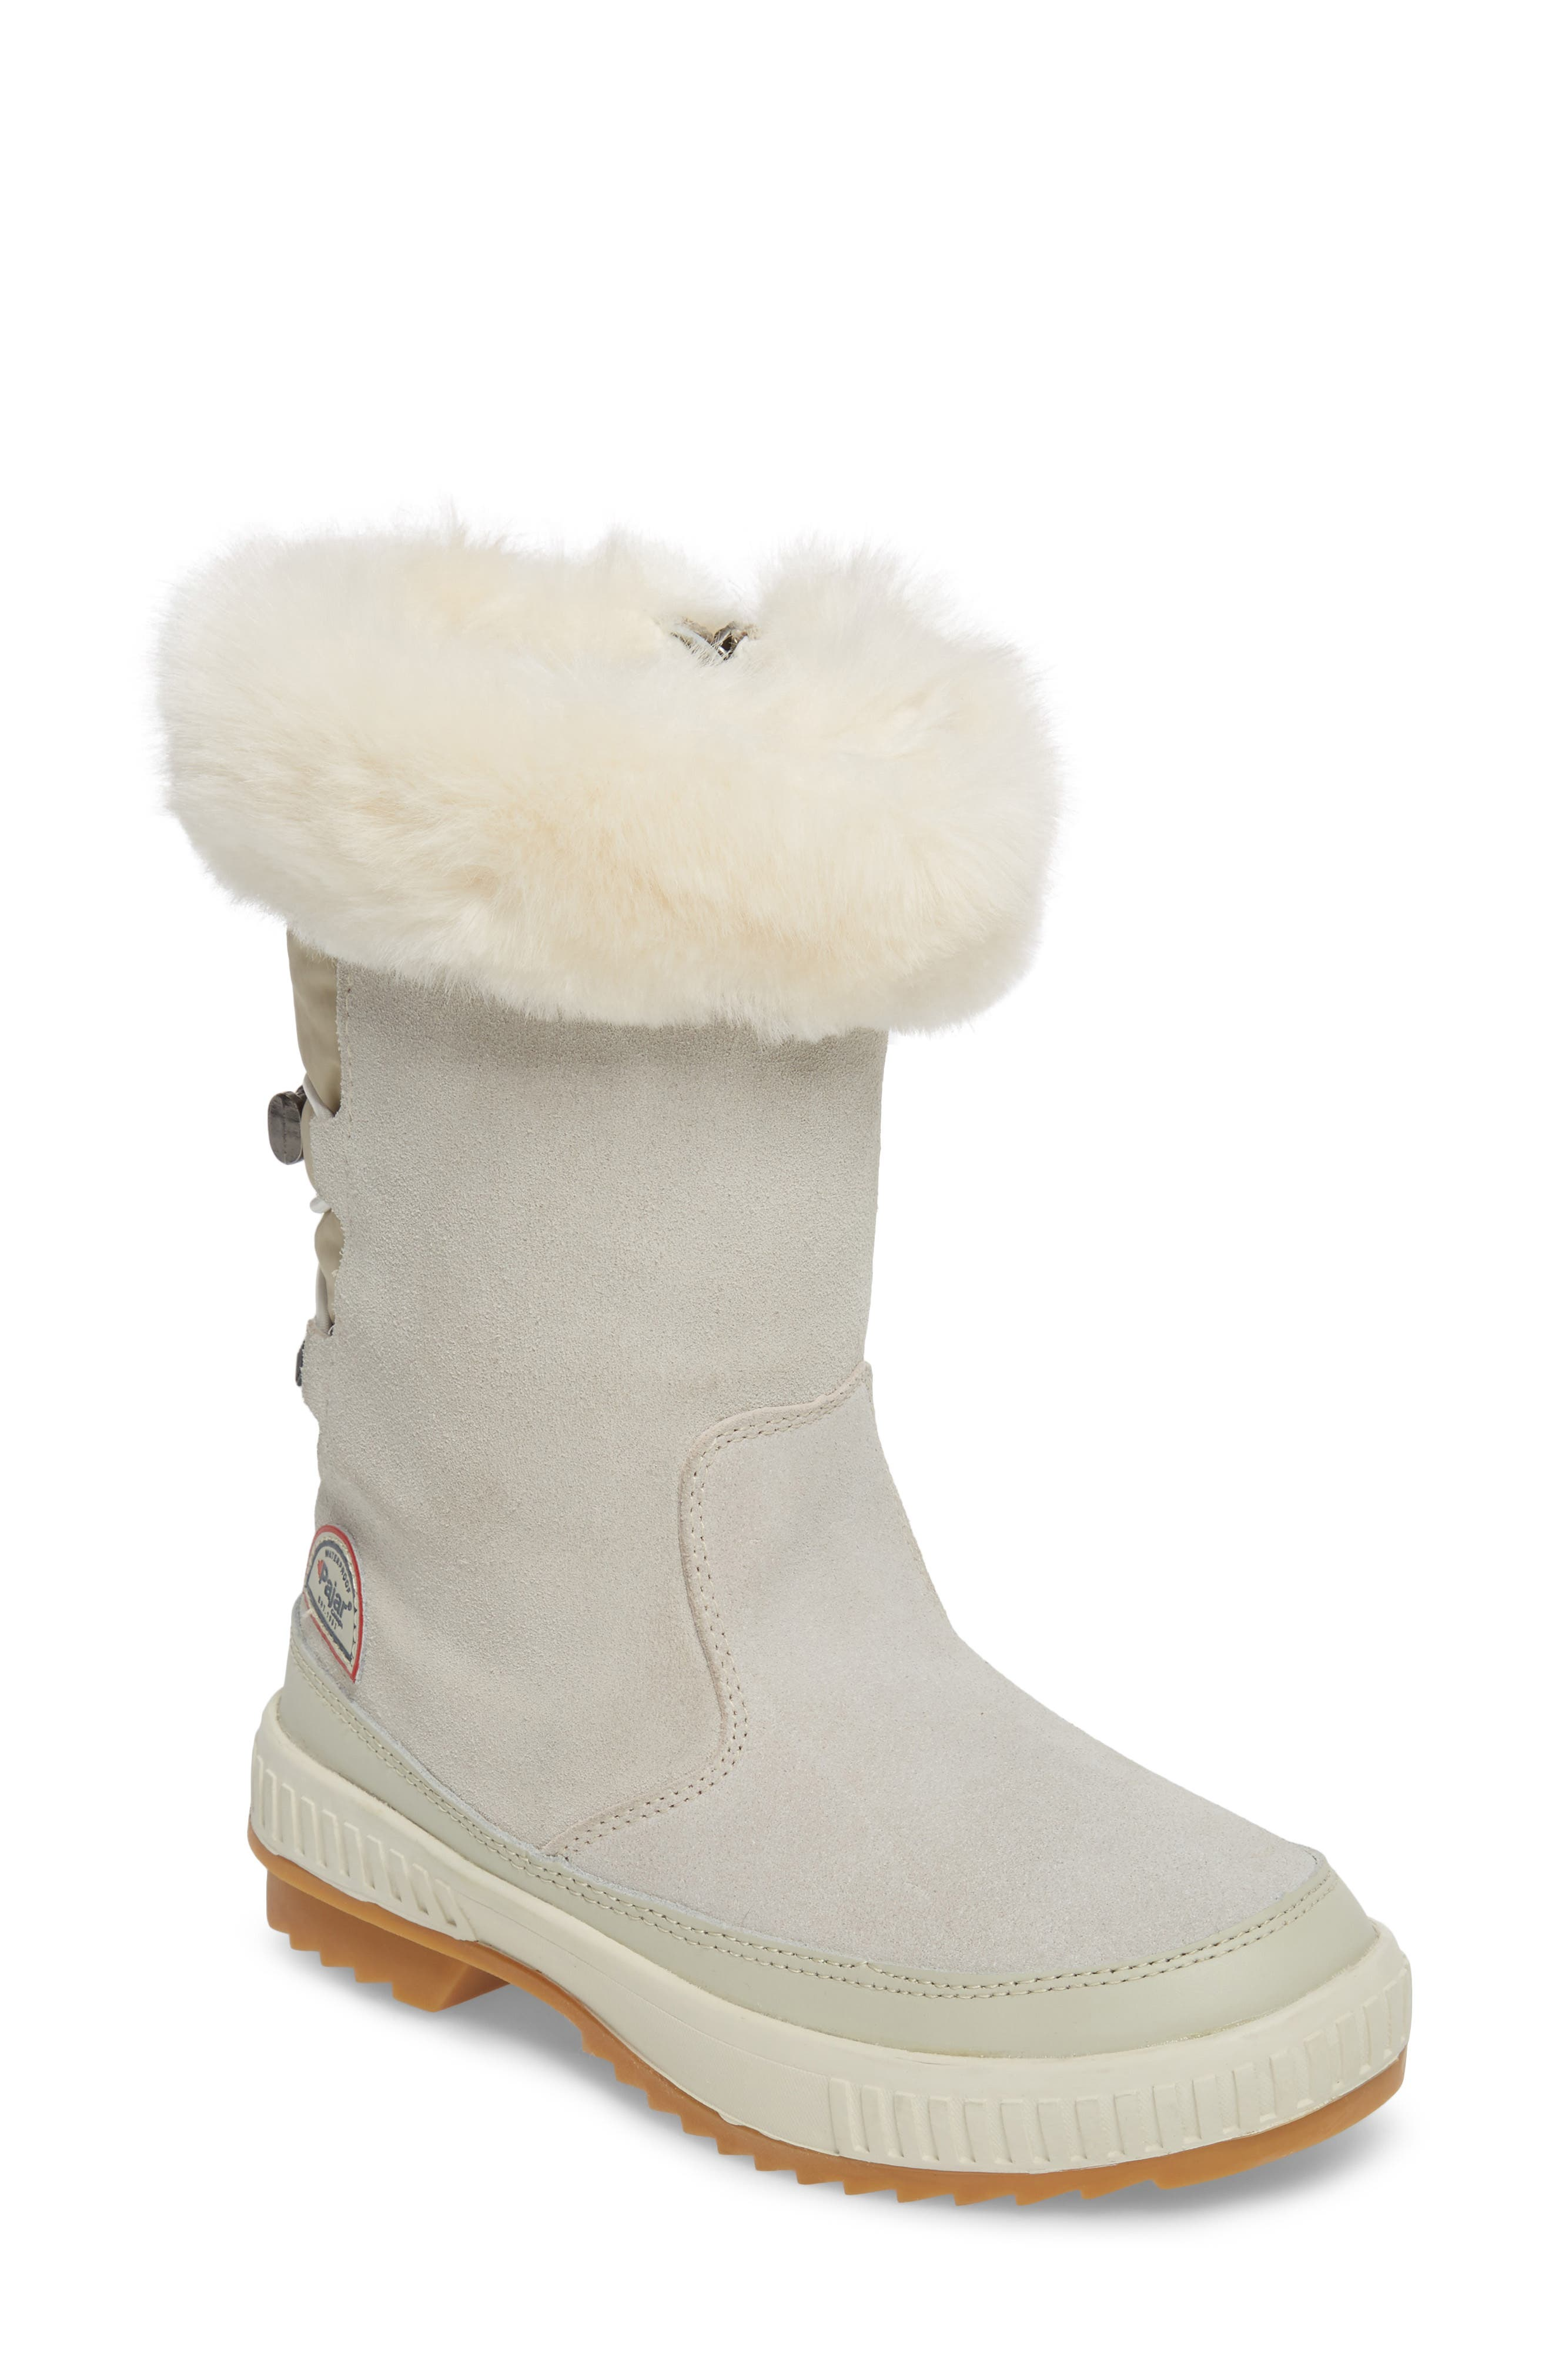 Kady Waterproof Insulated Winter Boot with Plush Cuff,                             Main thumbnail 1, color,                             100